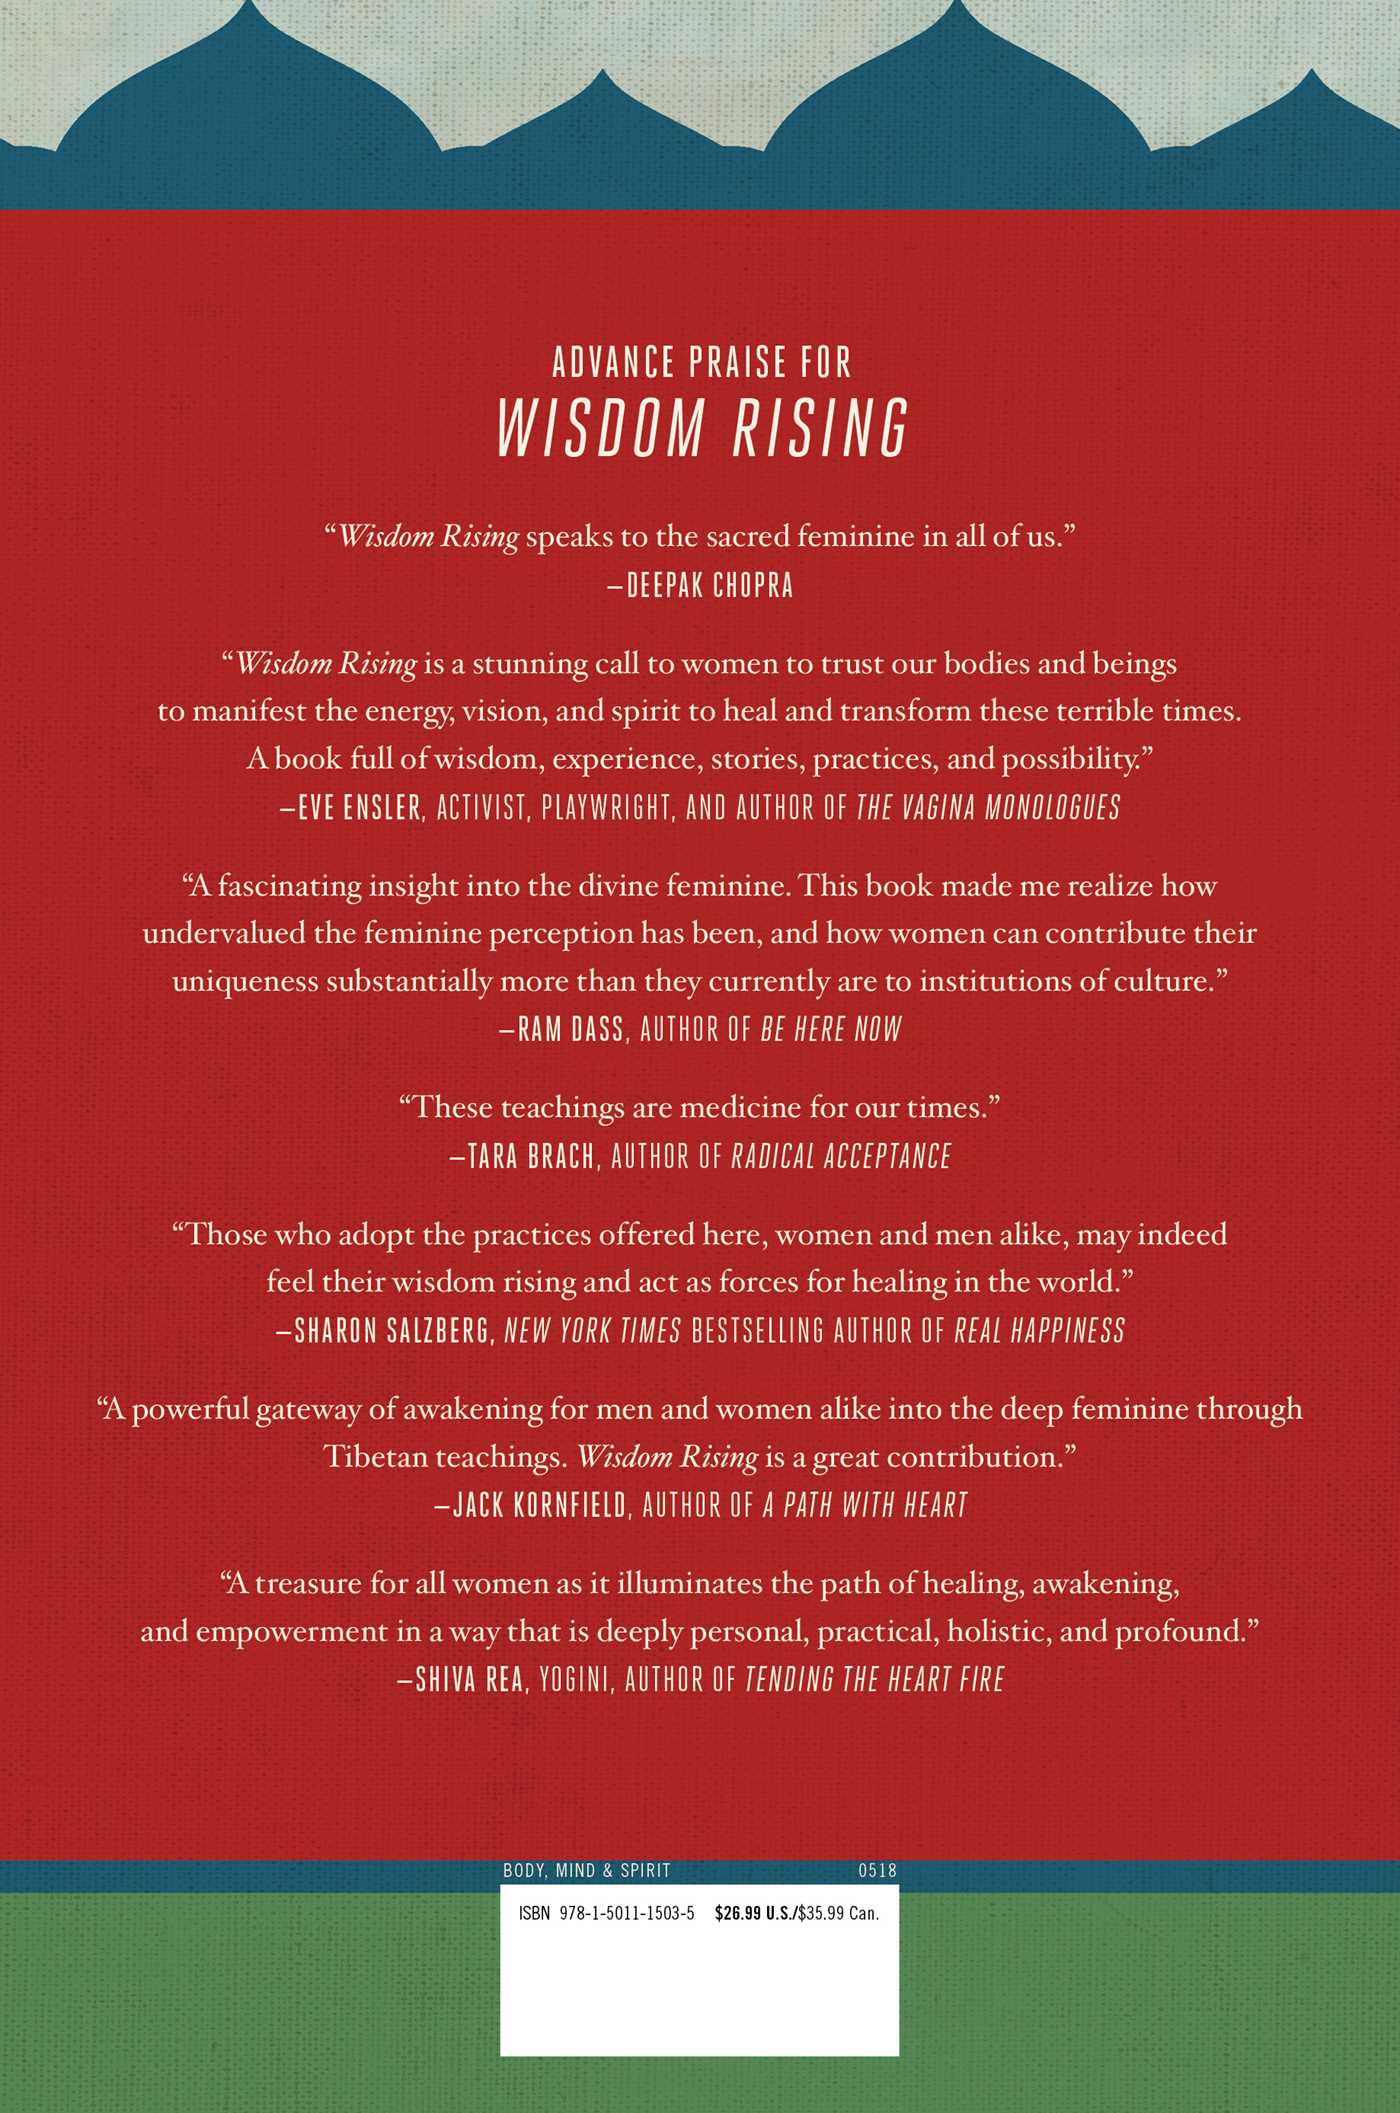 Wisdom rising book by lama tsultrim allione official publisher wisdom rising book by lama tsultrim allione official publisher page simon schuster fandeluxe Image collections